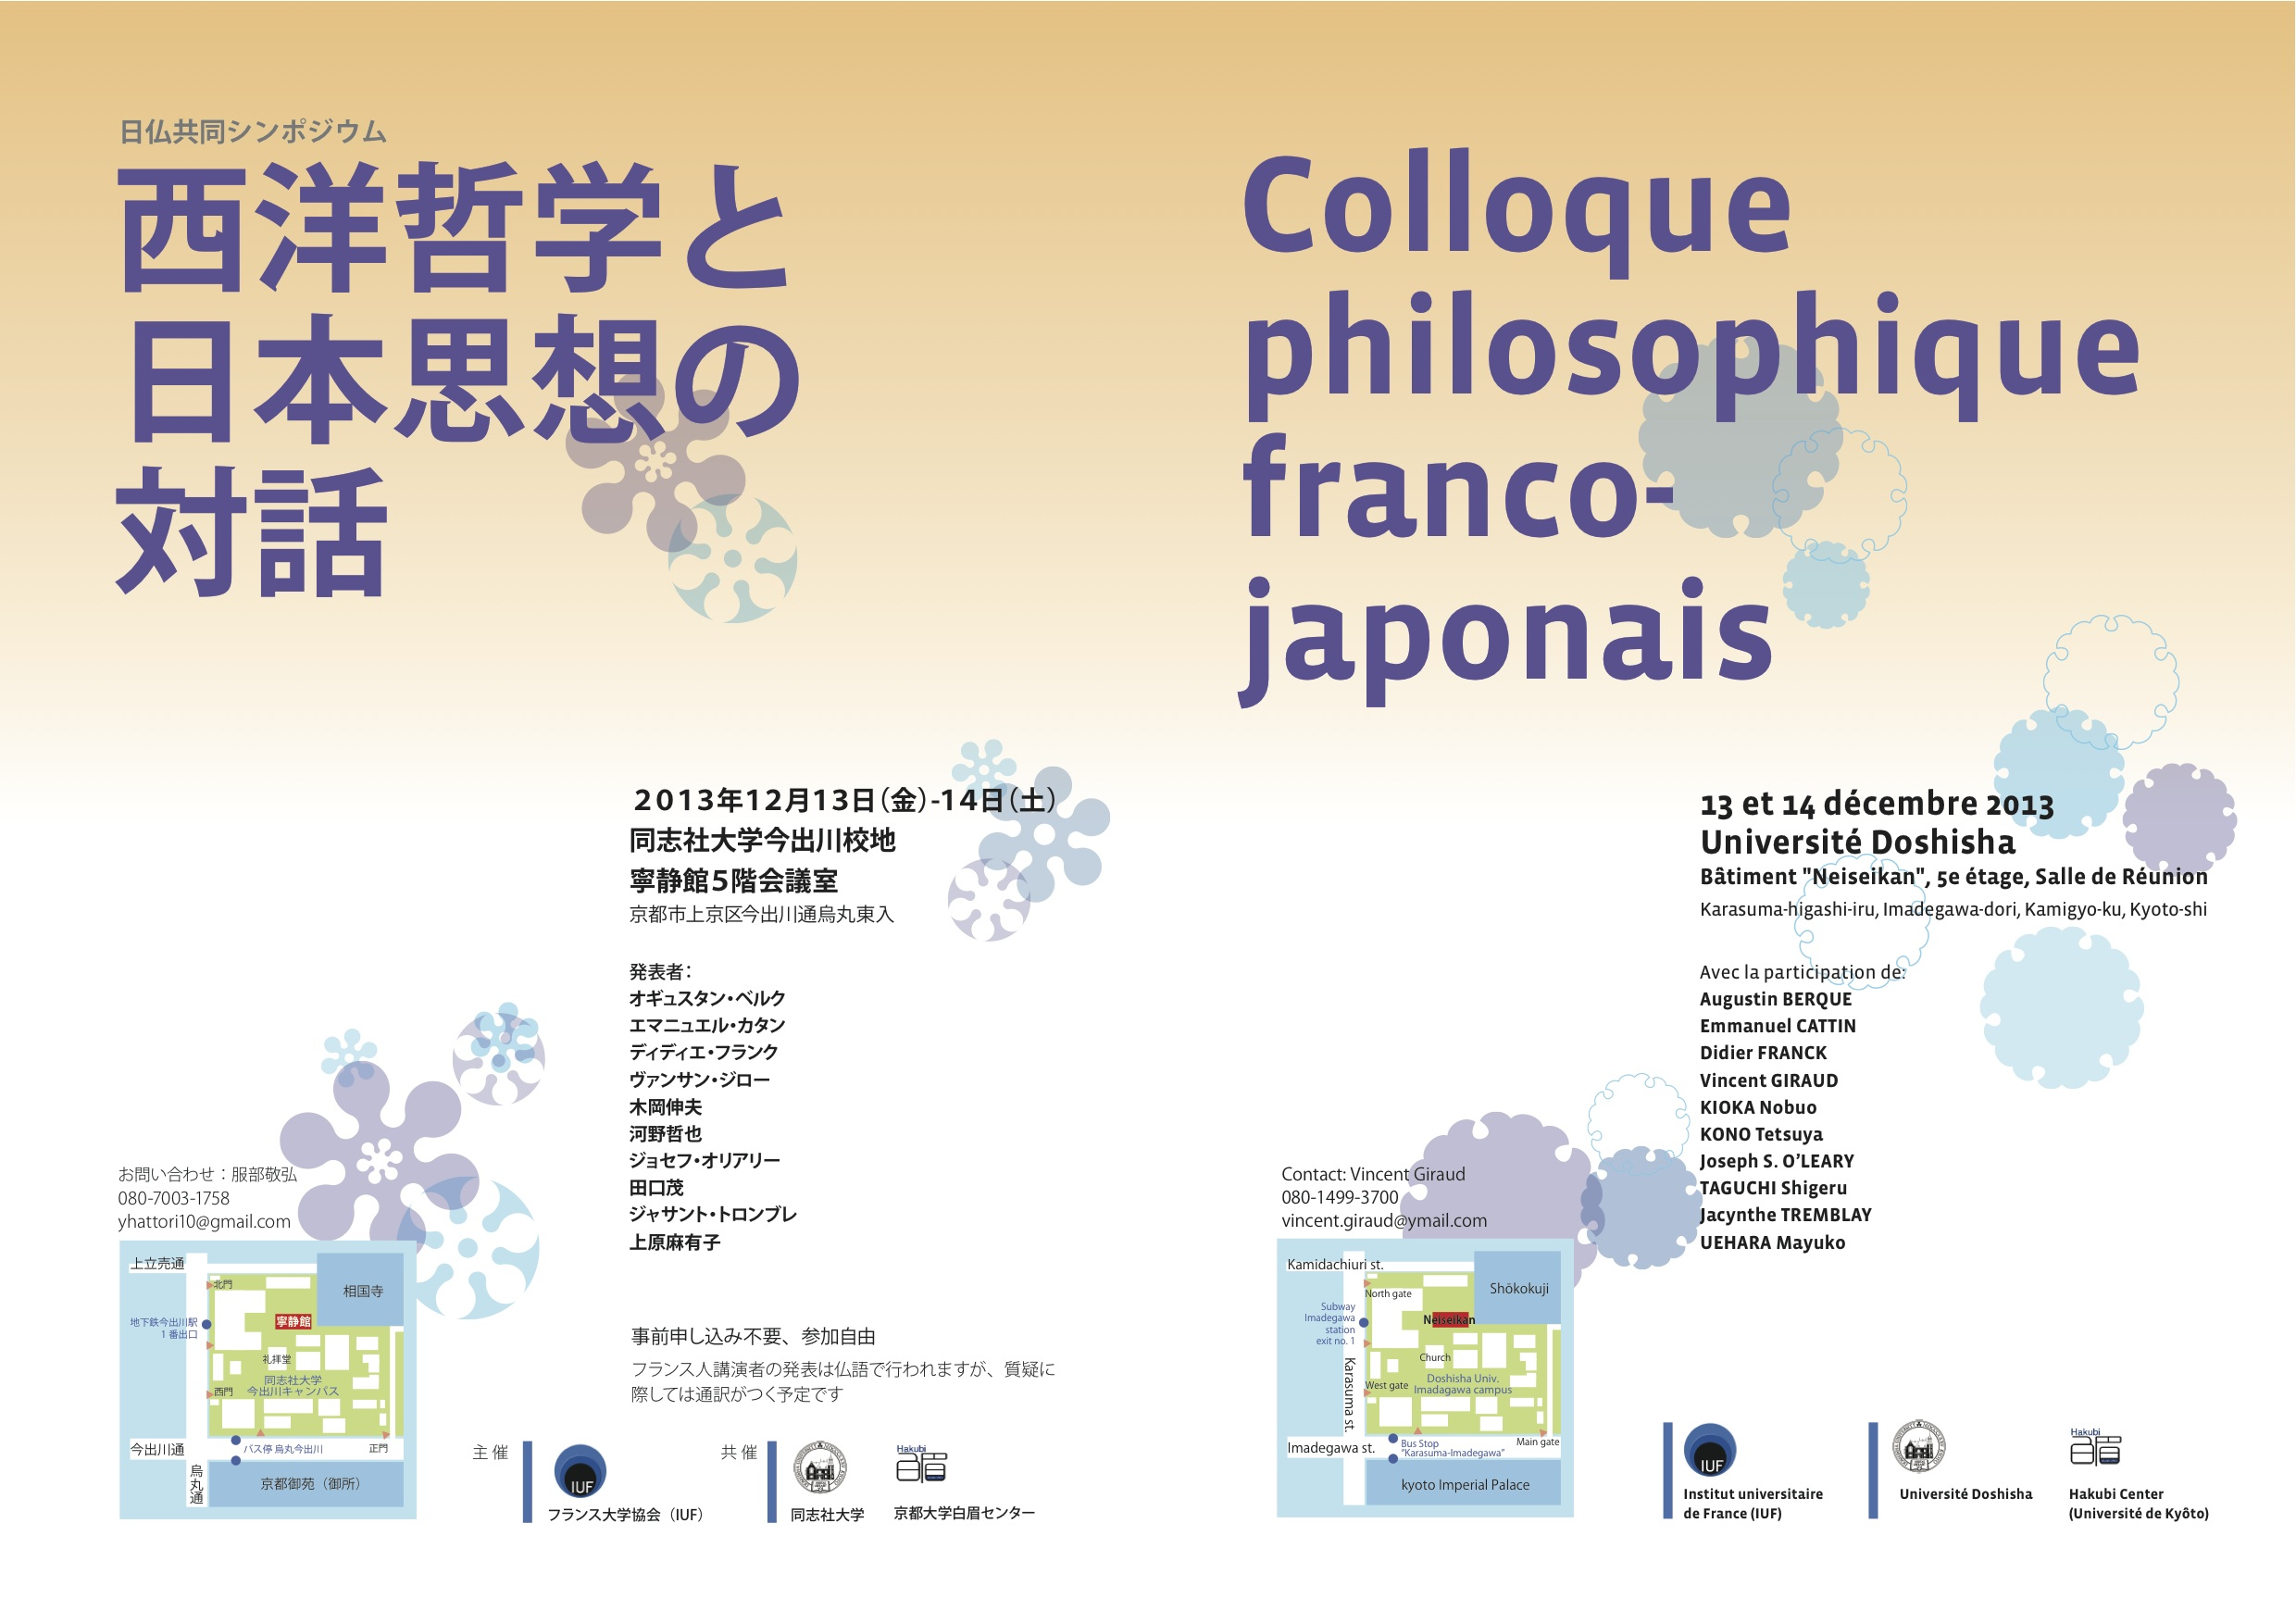 Colloque%20philosophique.jpg